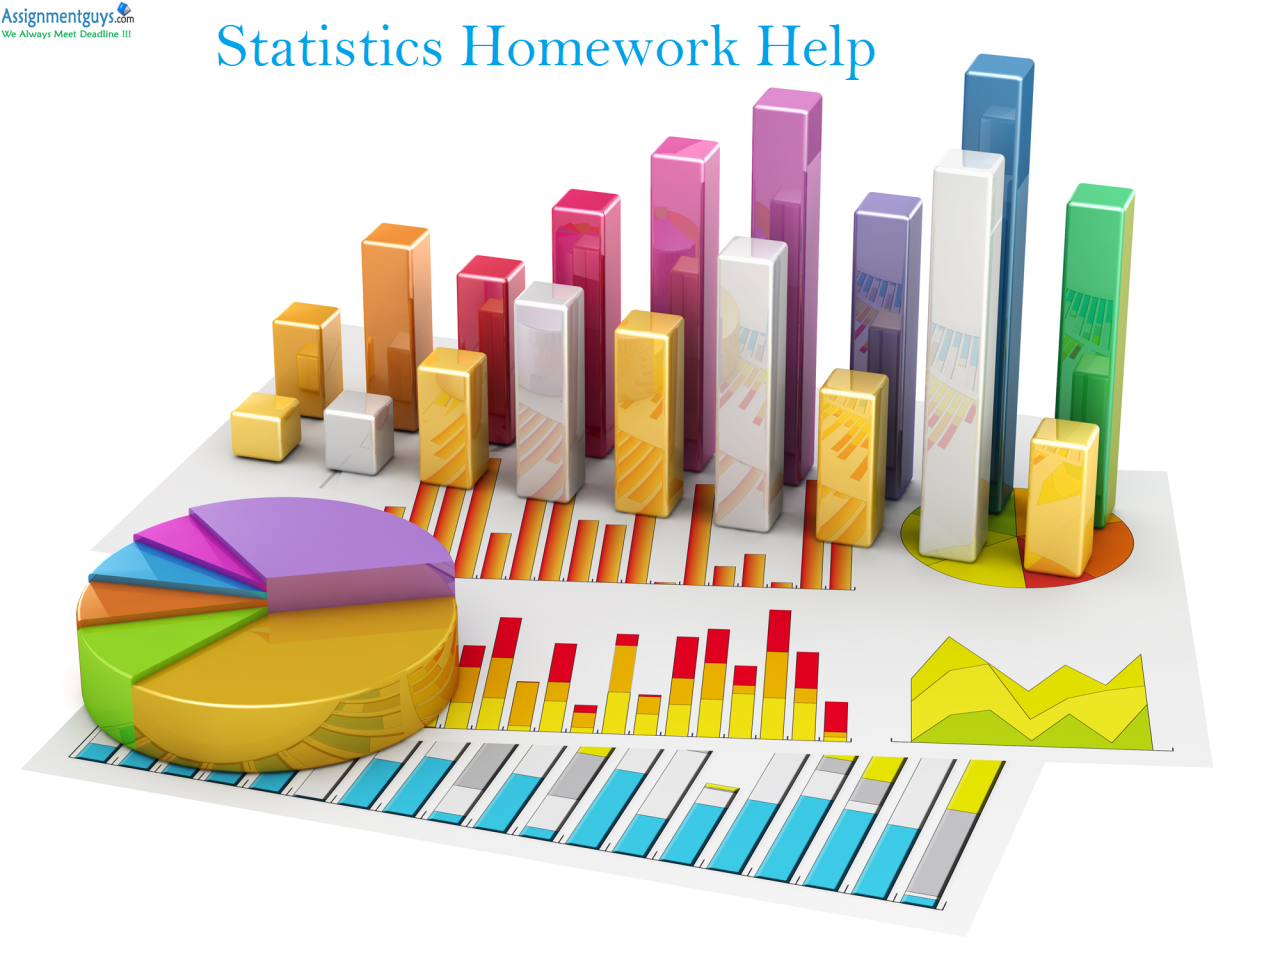 Are You Still in Search of Professional Help with Statistics?